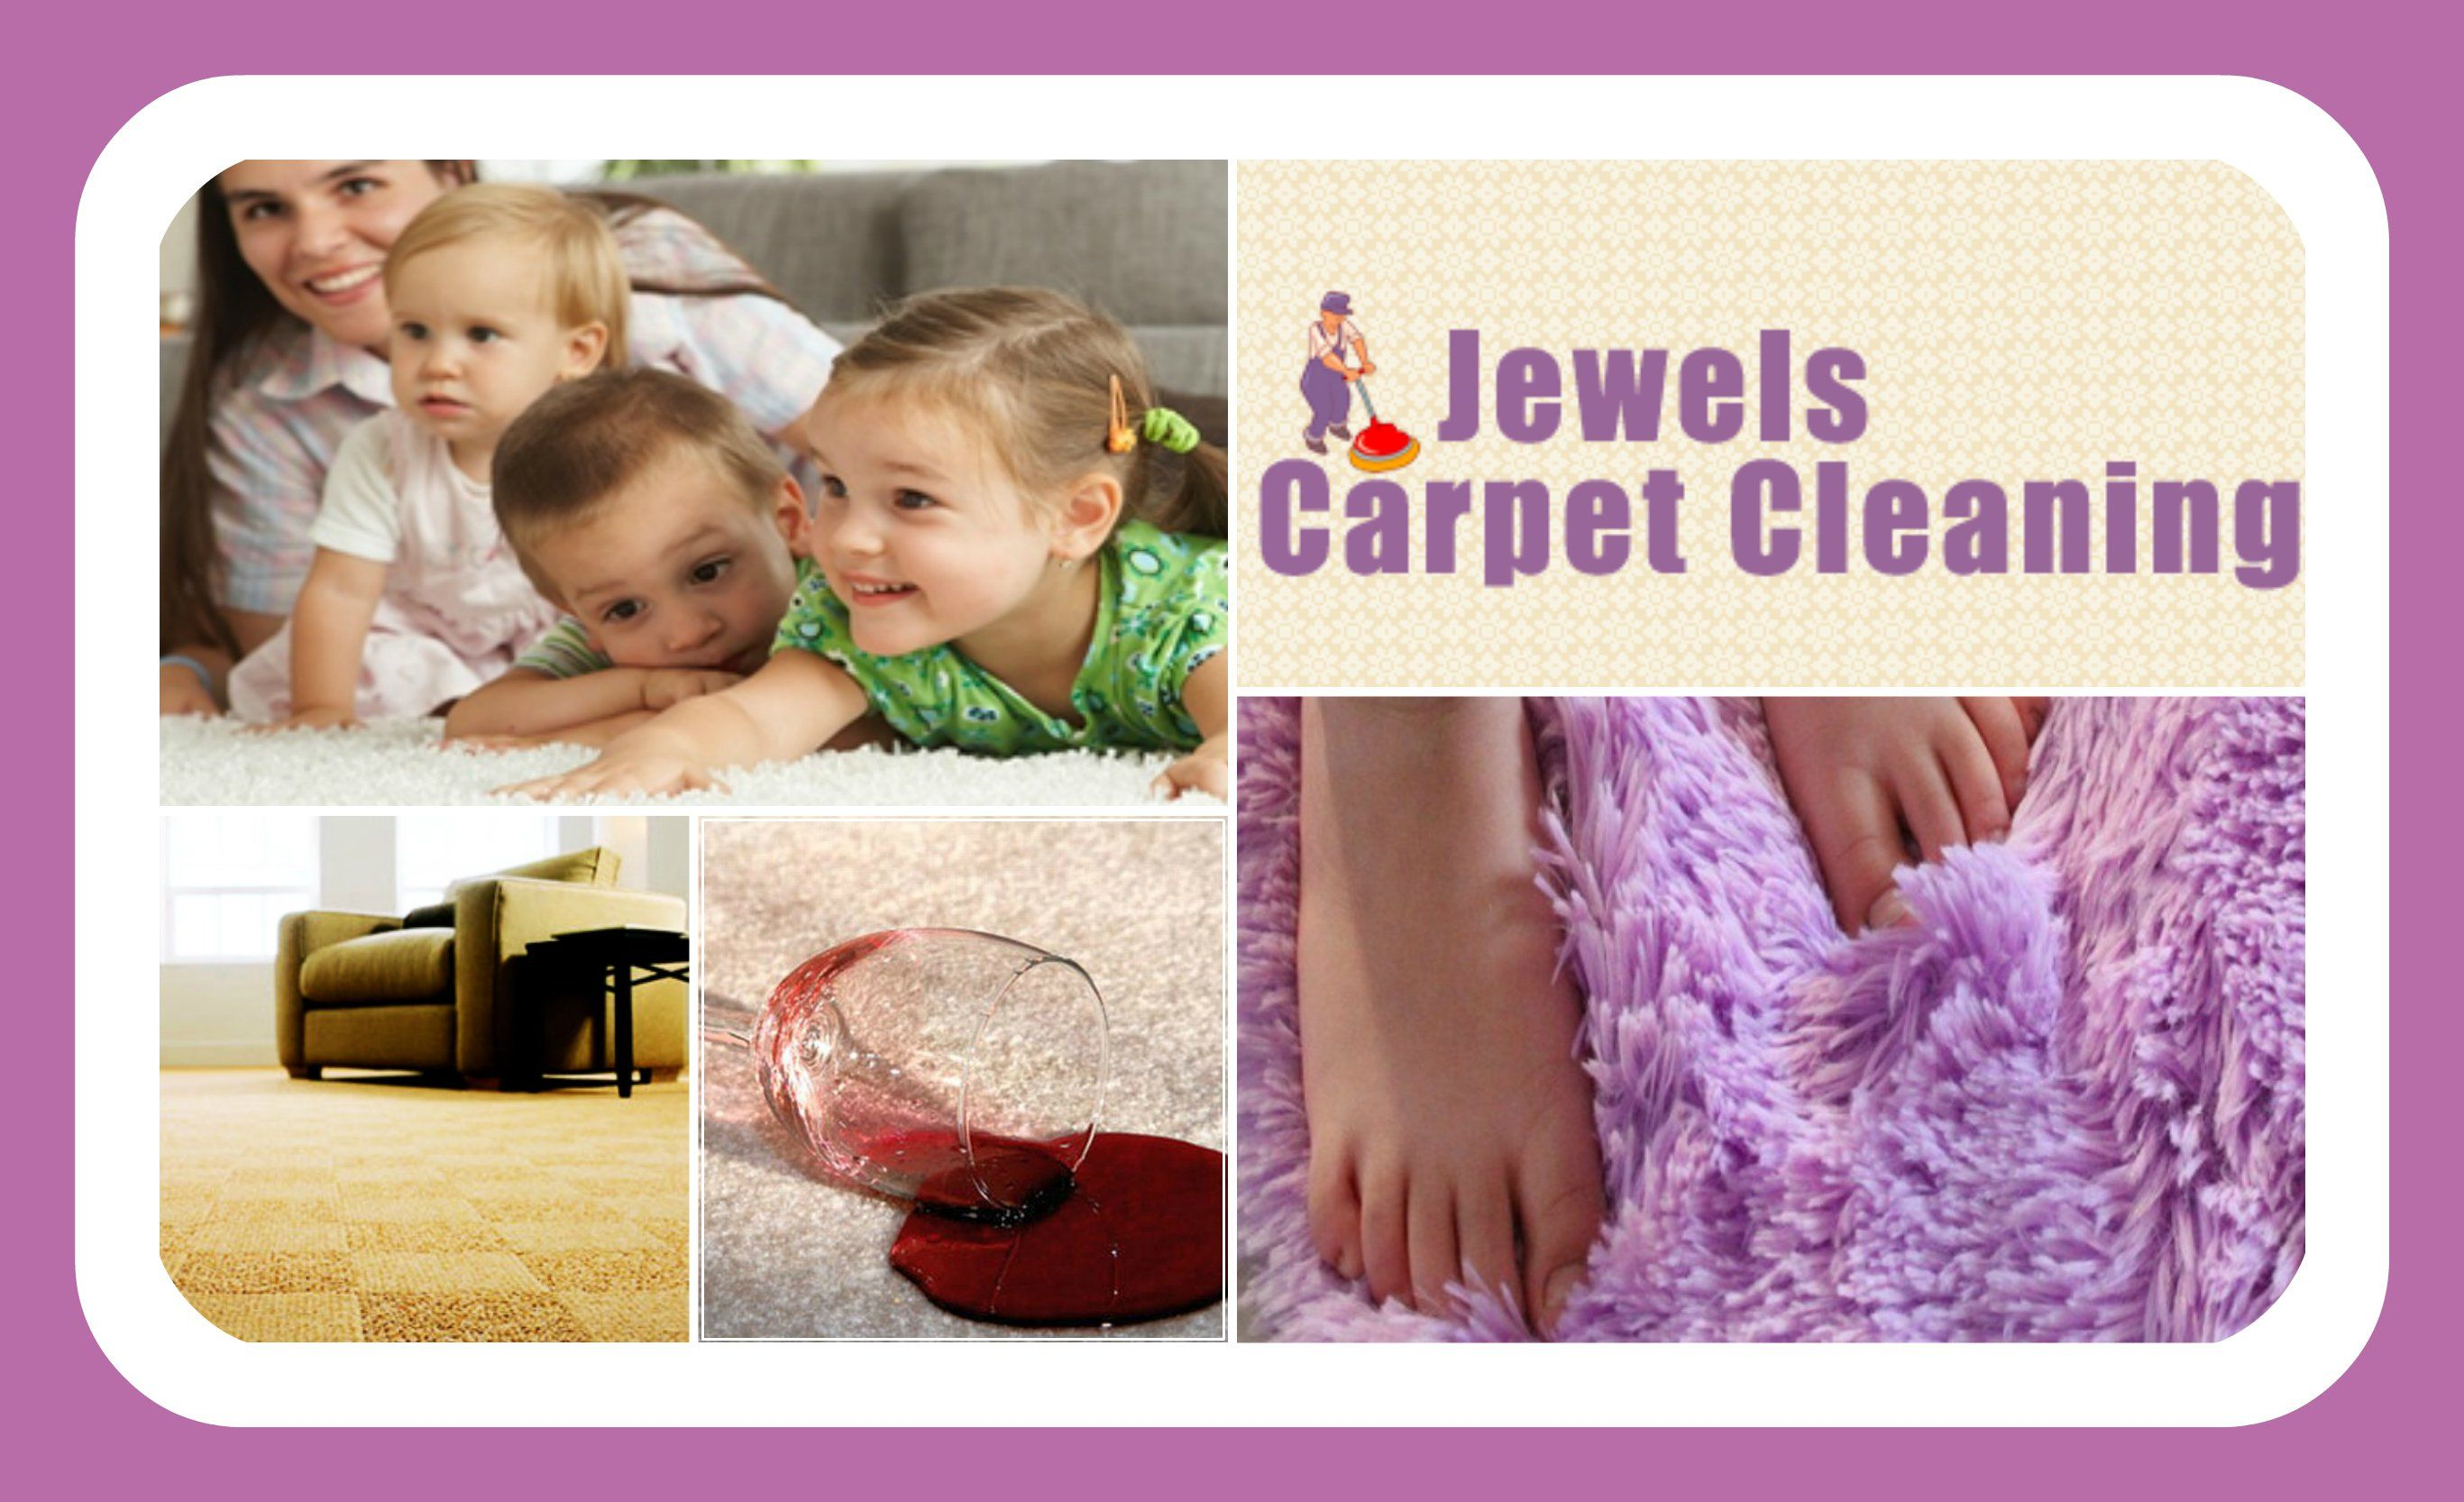 Jewels Dry Carpet Cleaning Has Great Expertise In Carpet And Upholstery Cleaning In Rockingham We How To Clean Carpet Dry Carpet Cleaning Cleaning Upholstery